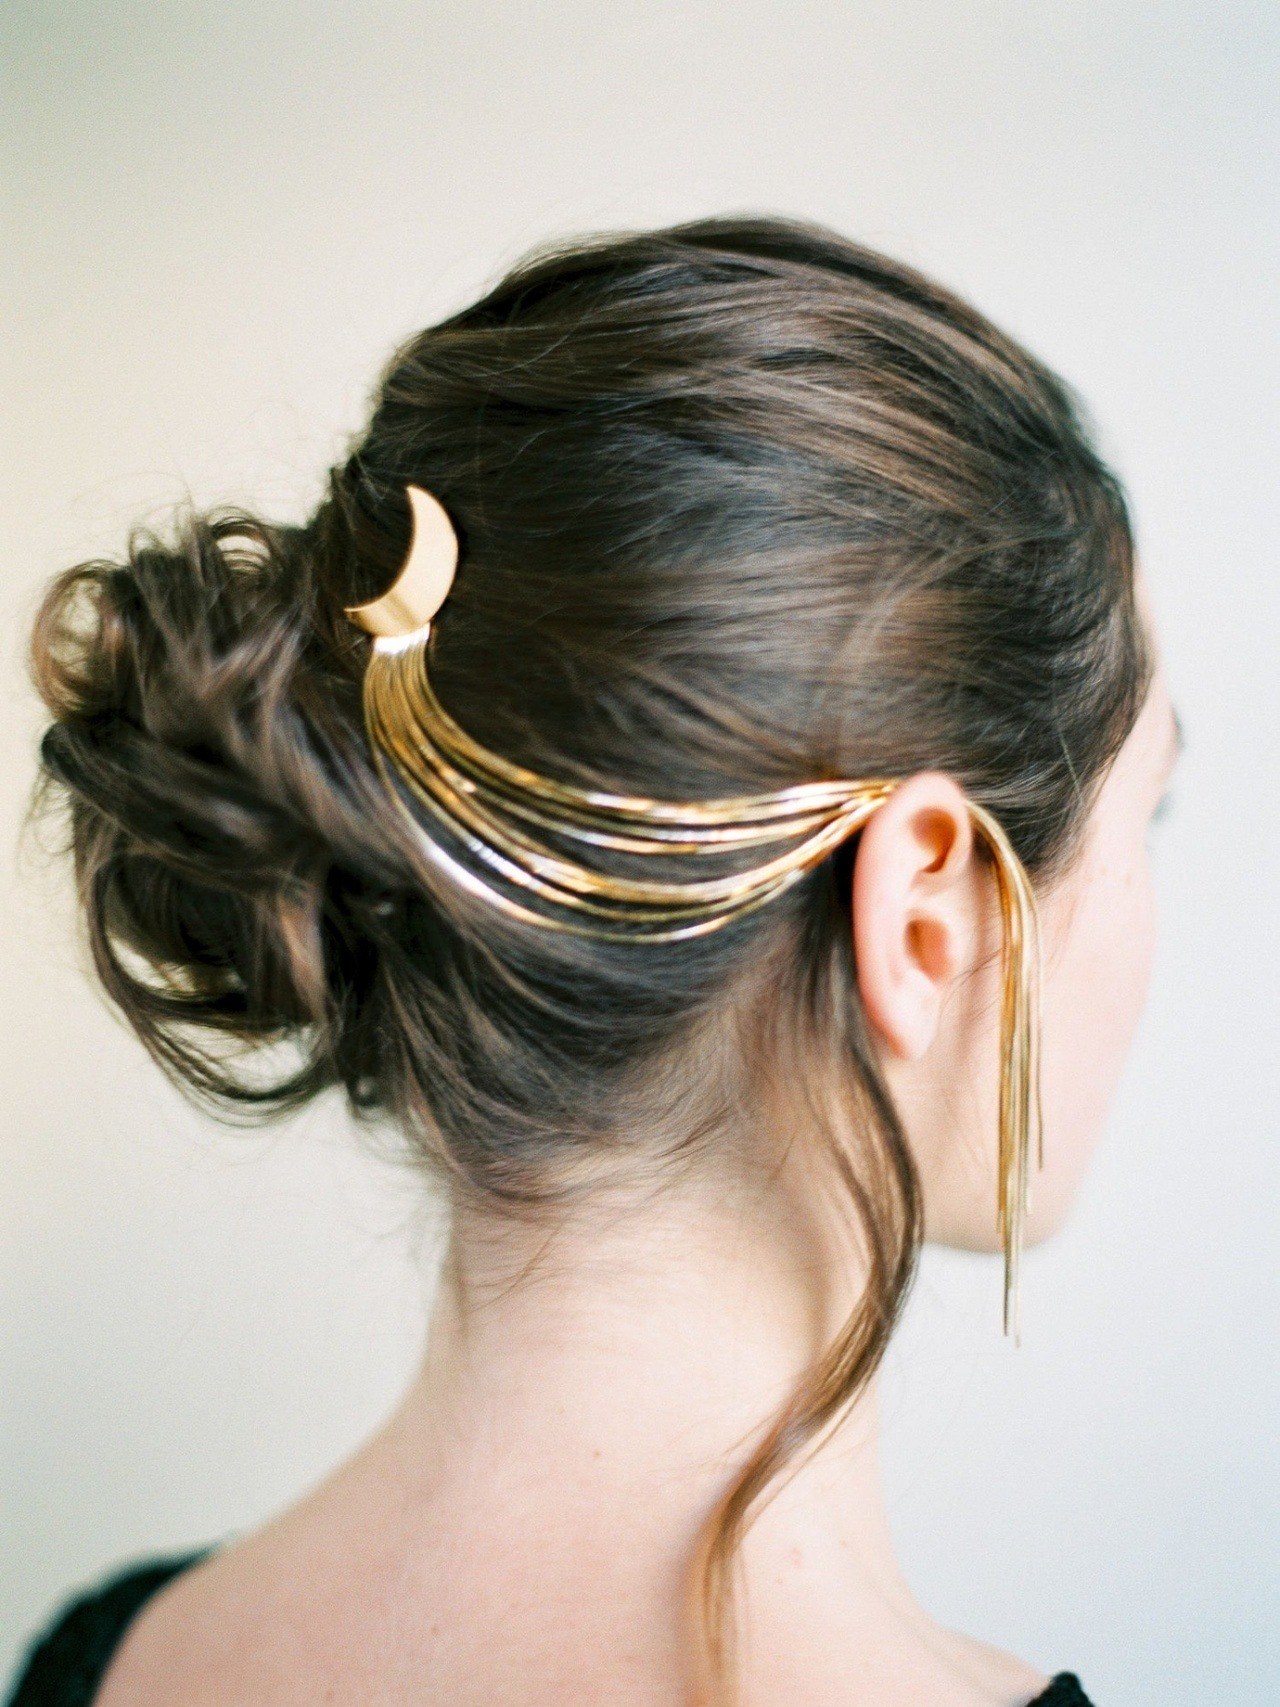 Hair Accessories and Crowns / Earrings  Neamilano on Etsy  See our #Etsy or #Hair Accessories tags